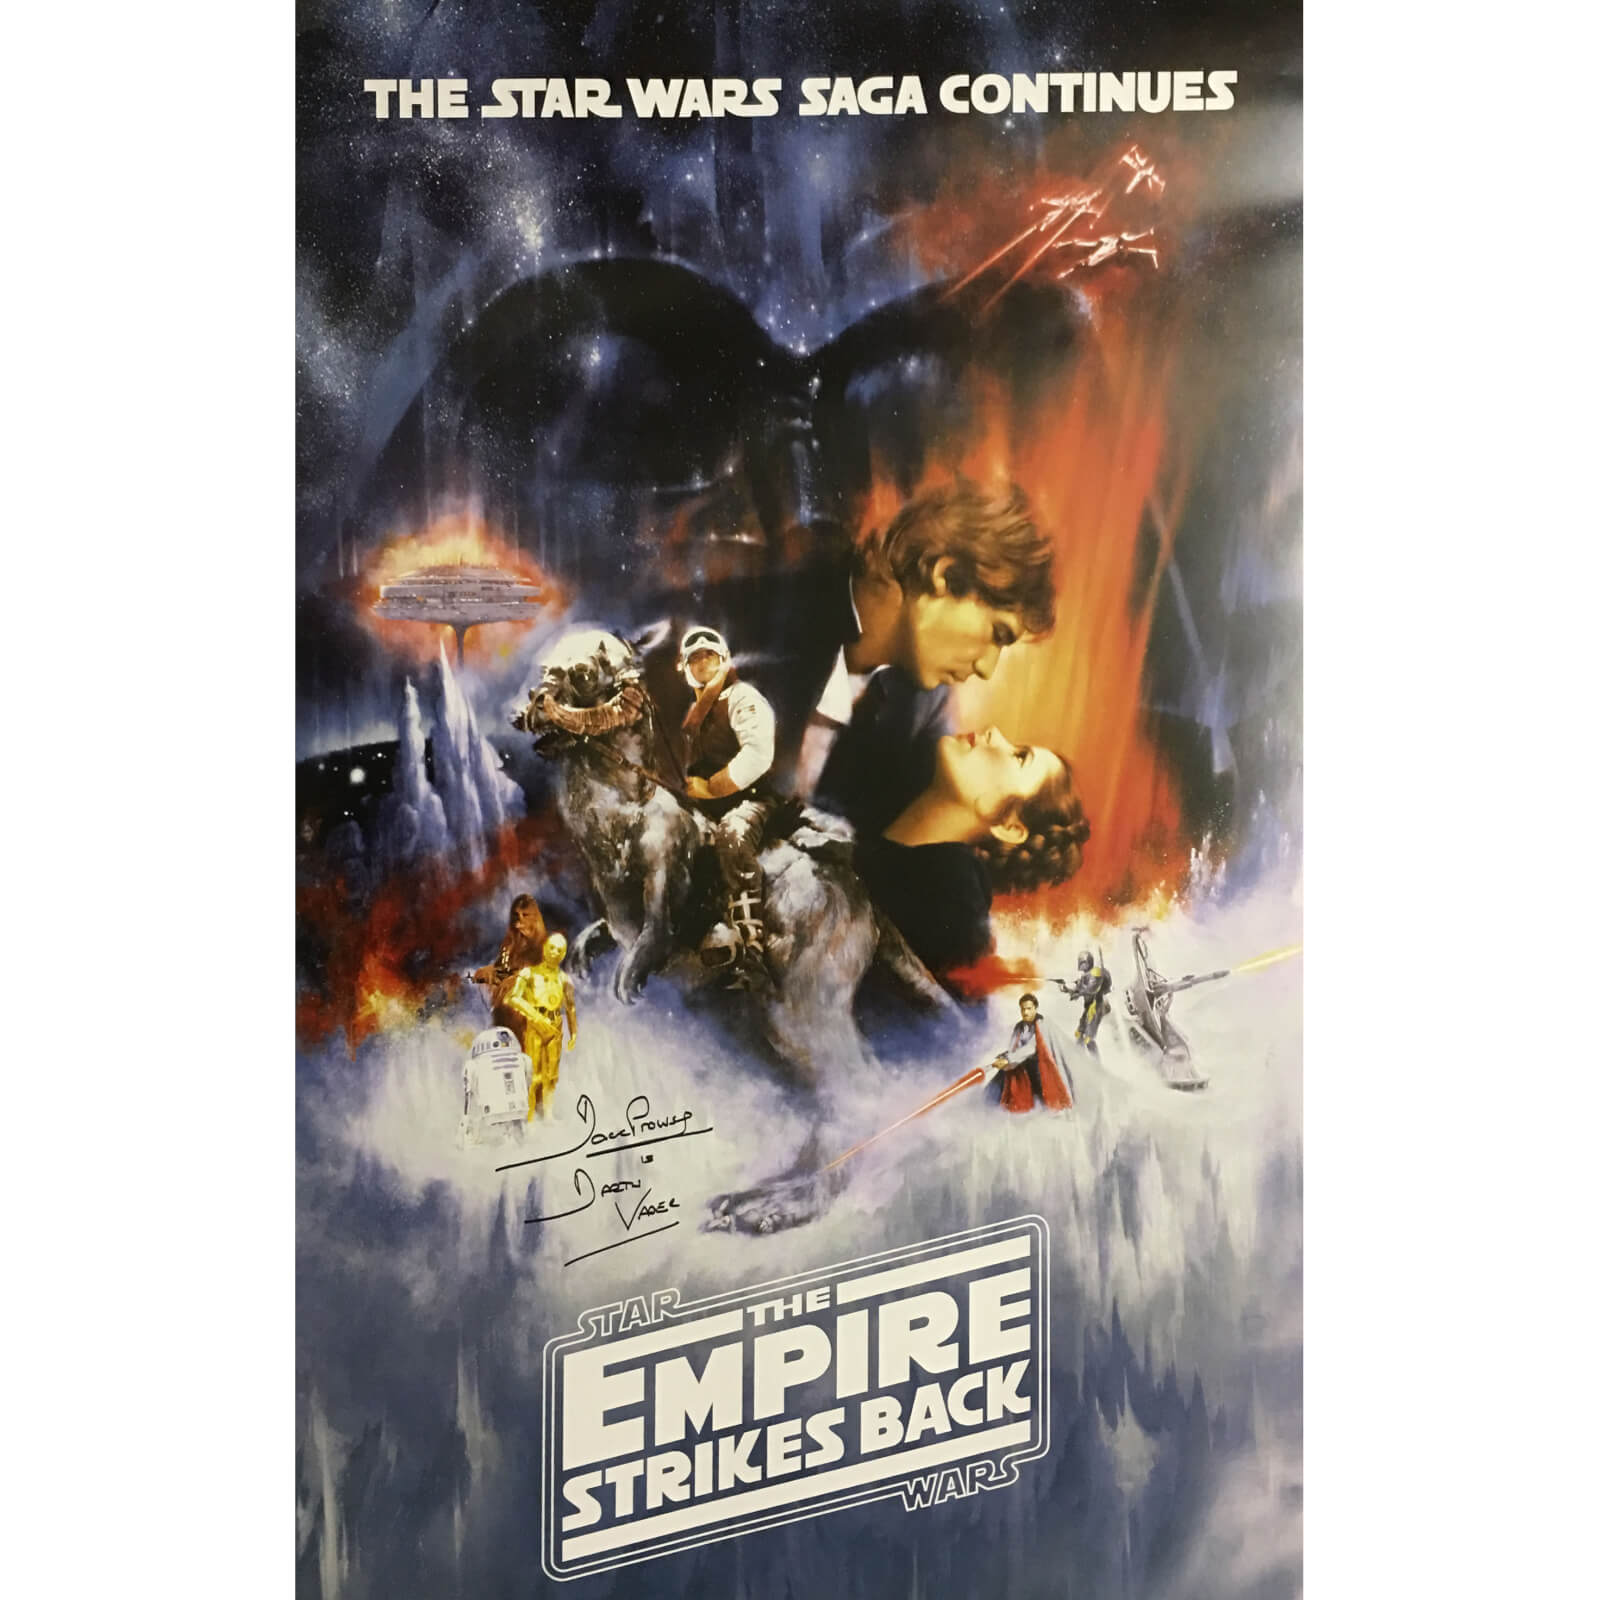 Star Wars: The Empire Strikes Back Framed Poster Signed by Dave Prowse (Darth Vader)